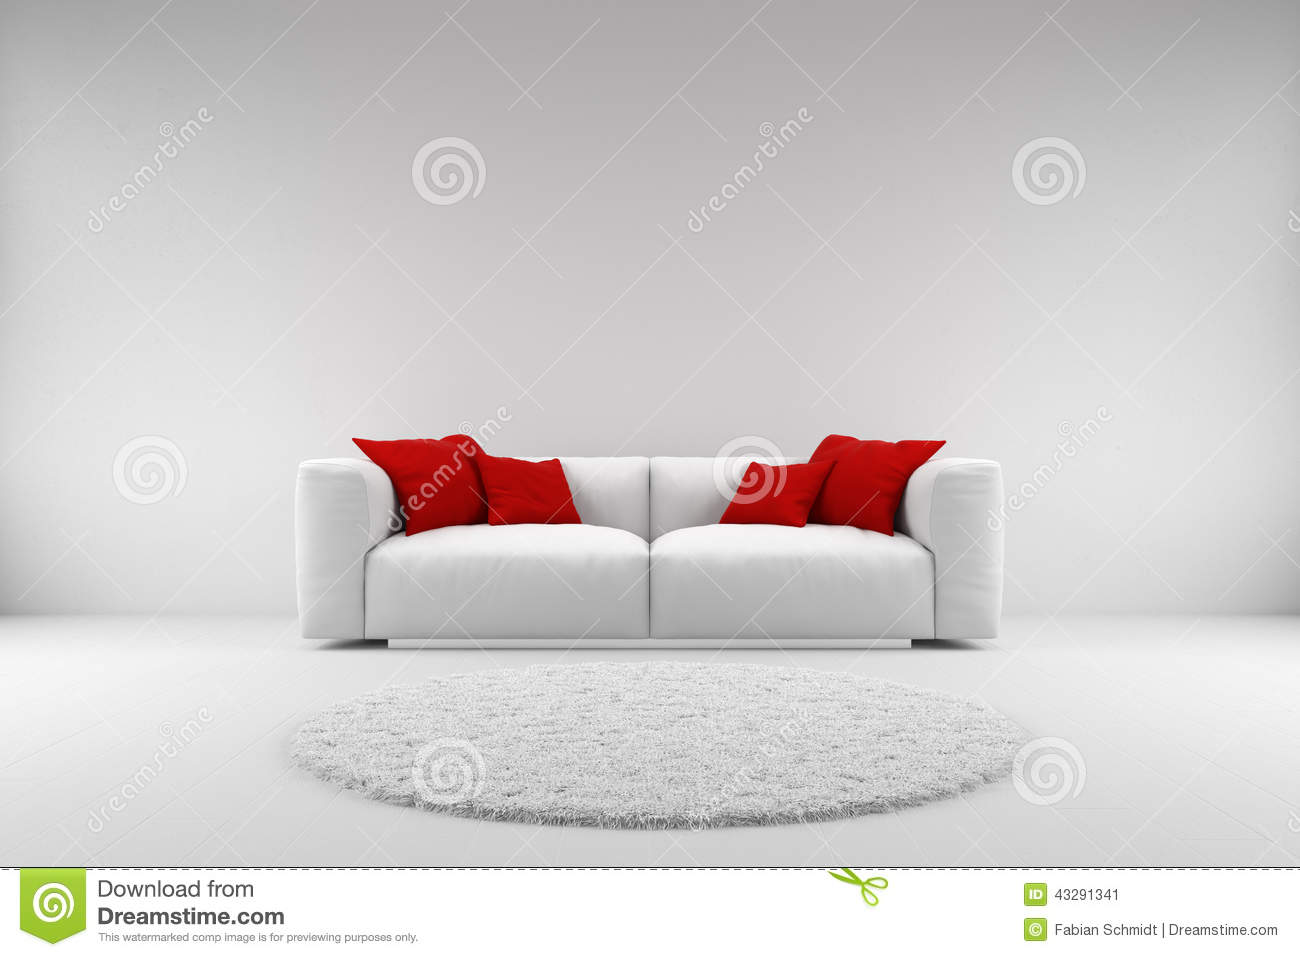 White Couch With Red Pillows Stock Illustration  Illustration of stylish couch 43291341